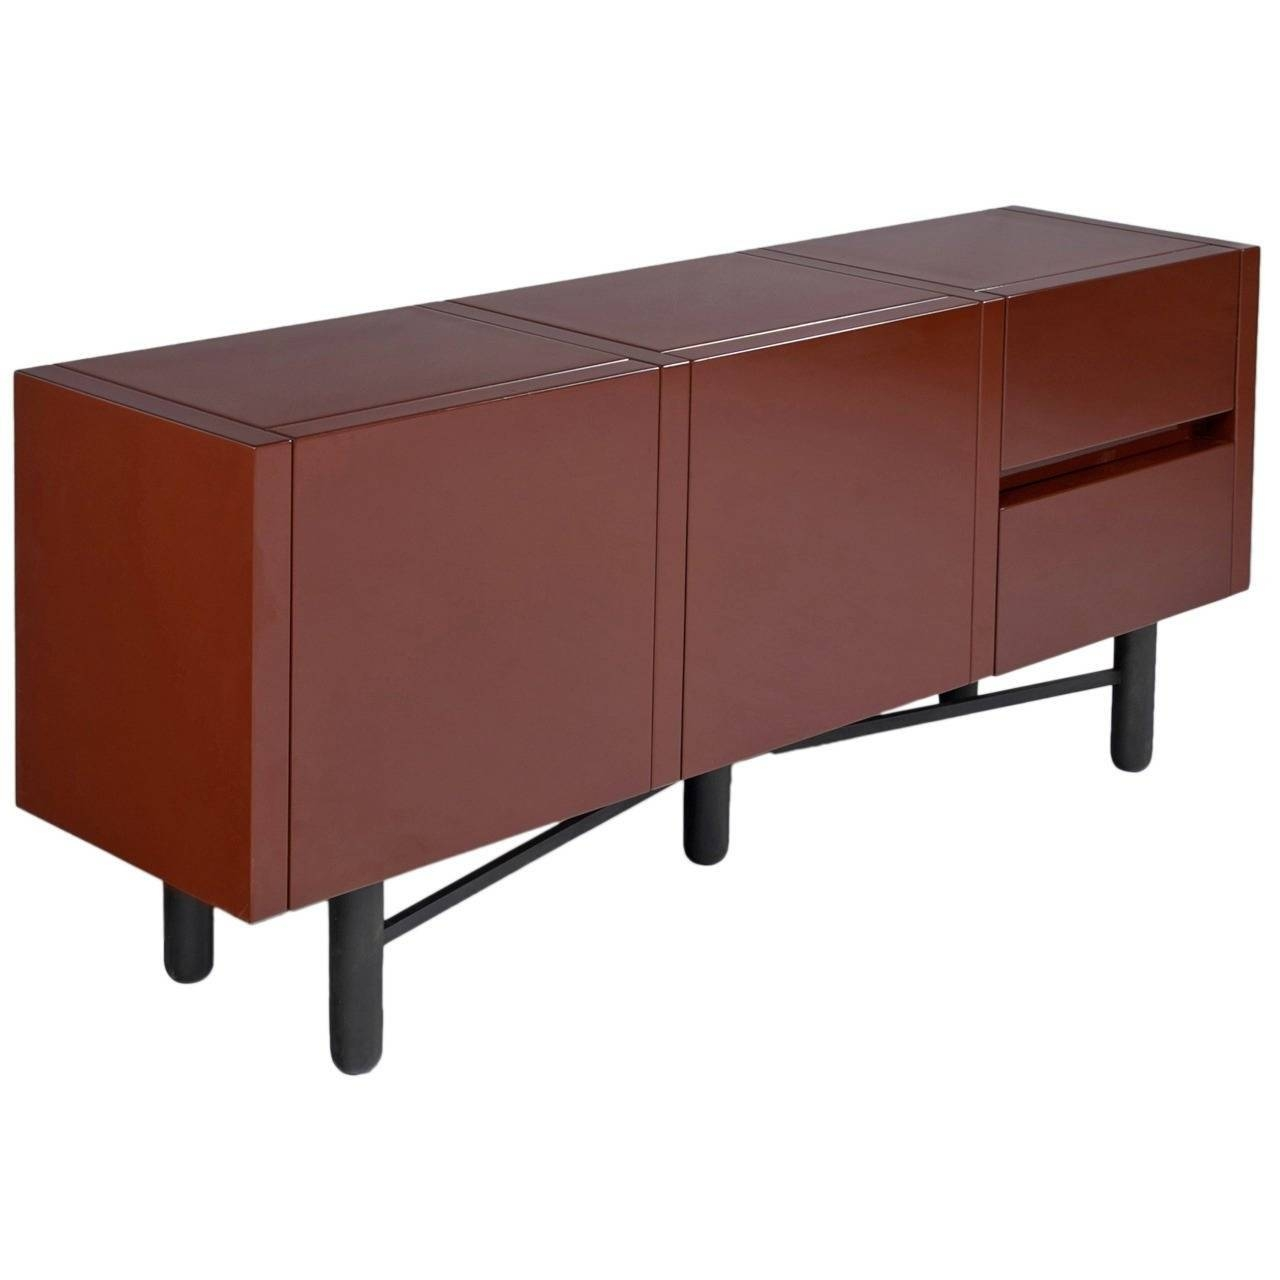 Roche Bobois Red Lacquered High Gloss Sideboard For Sale At 1Stdibs regarding Red High Gloss Sideboards (Image 23 of 30)